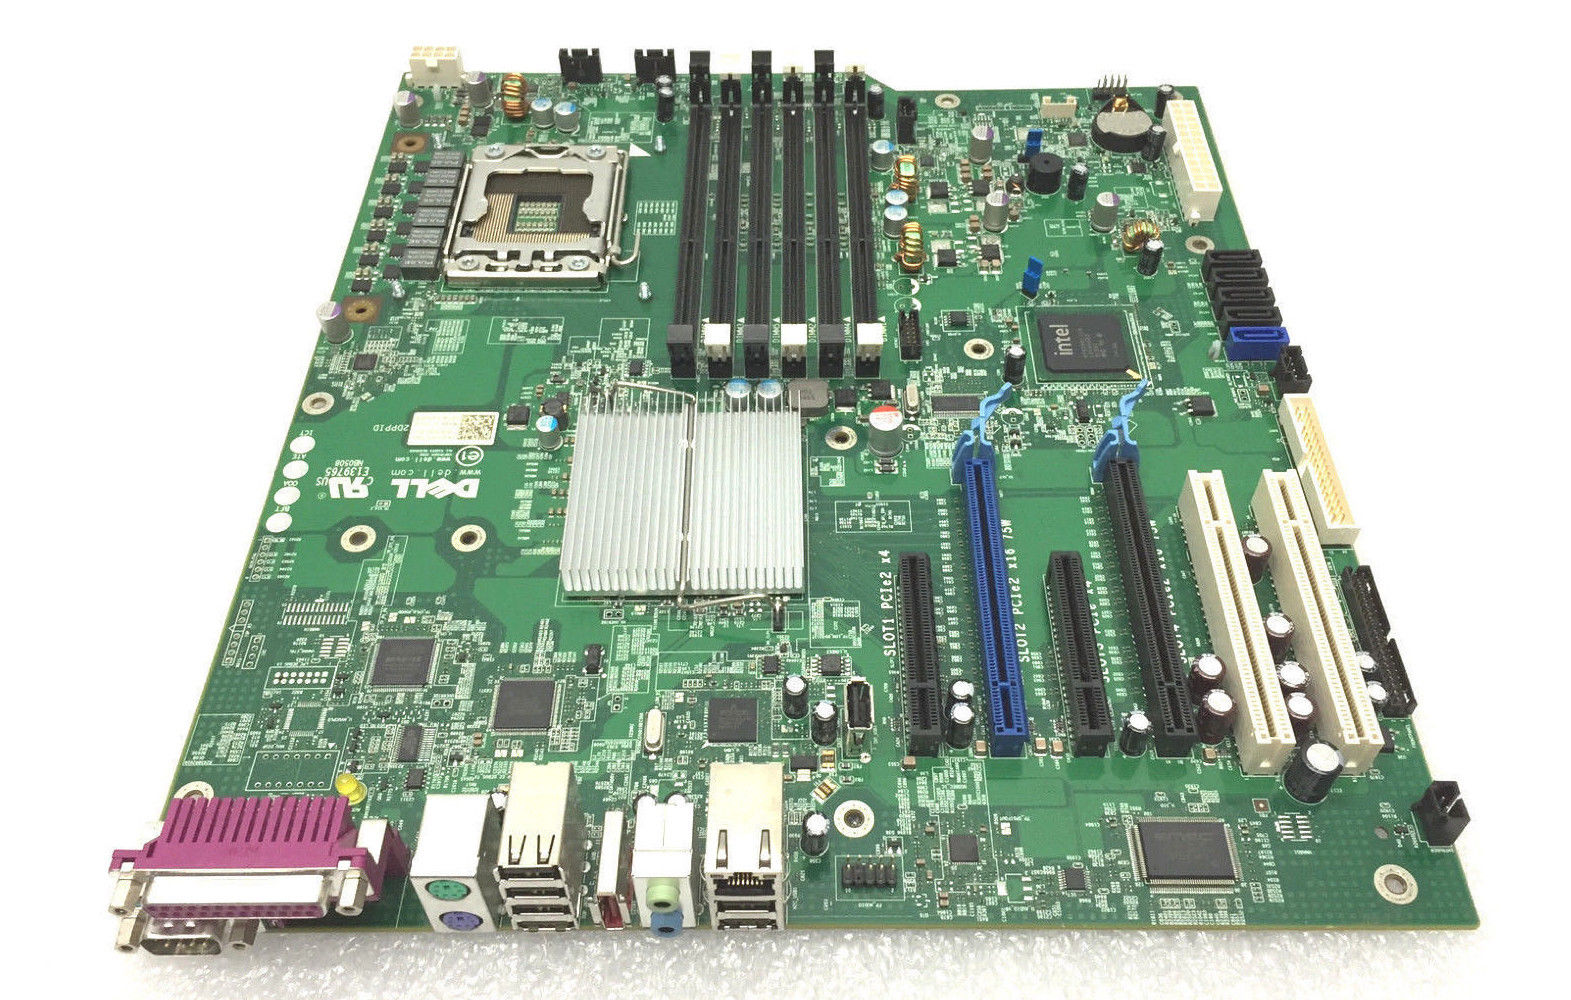 Dell Precision T3500 WorkStation System Board (9KPNV)